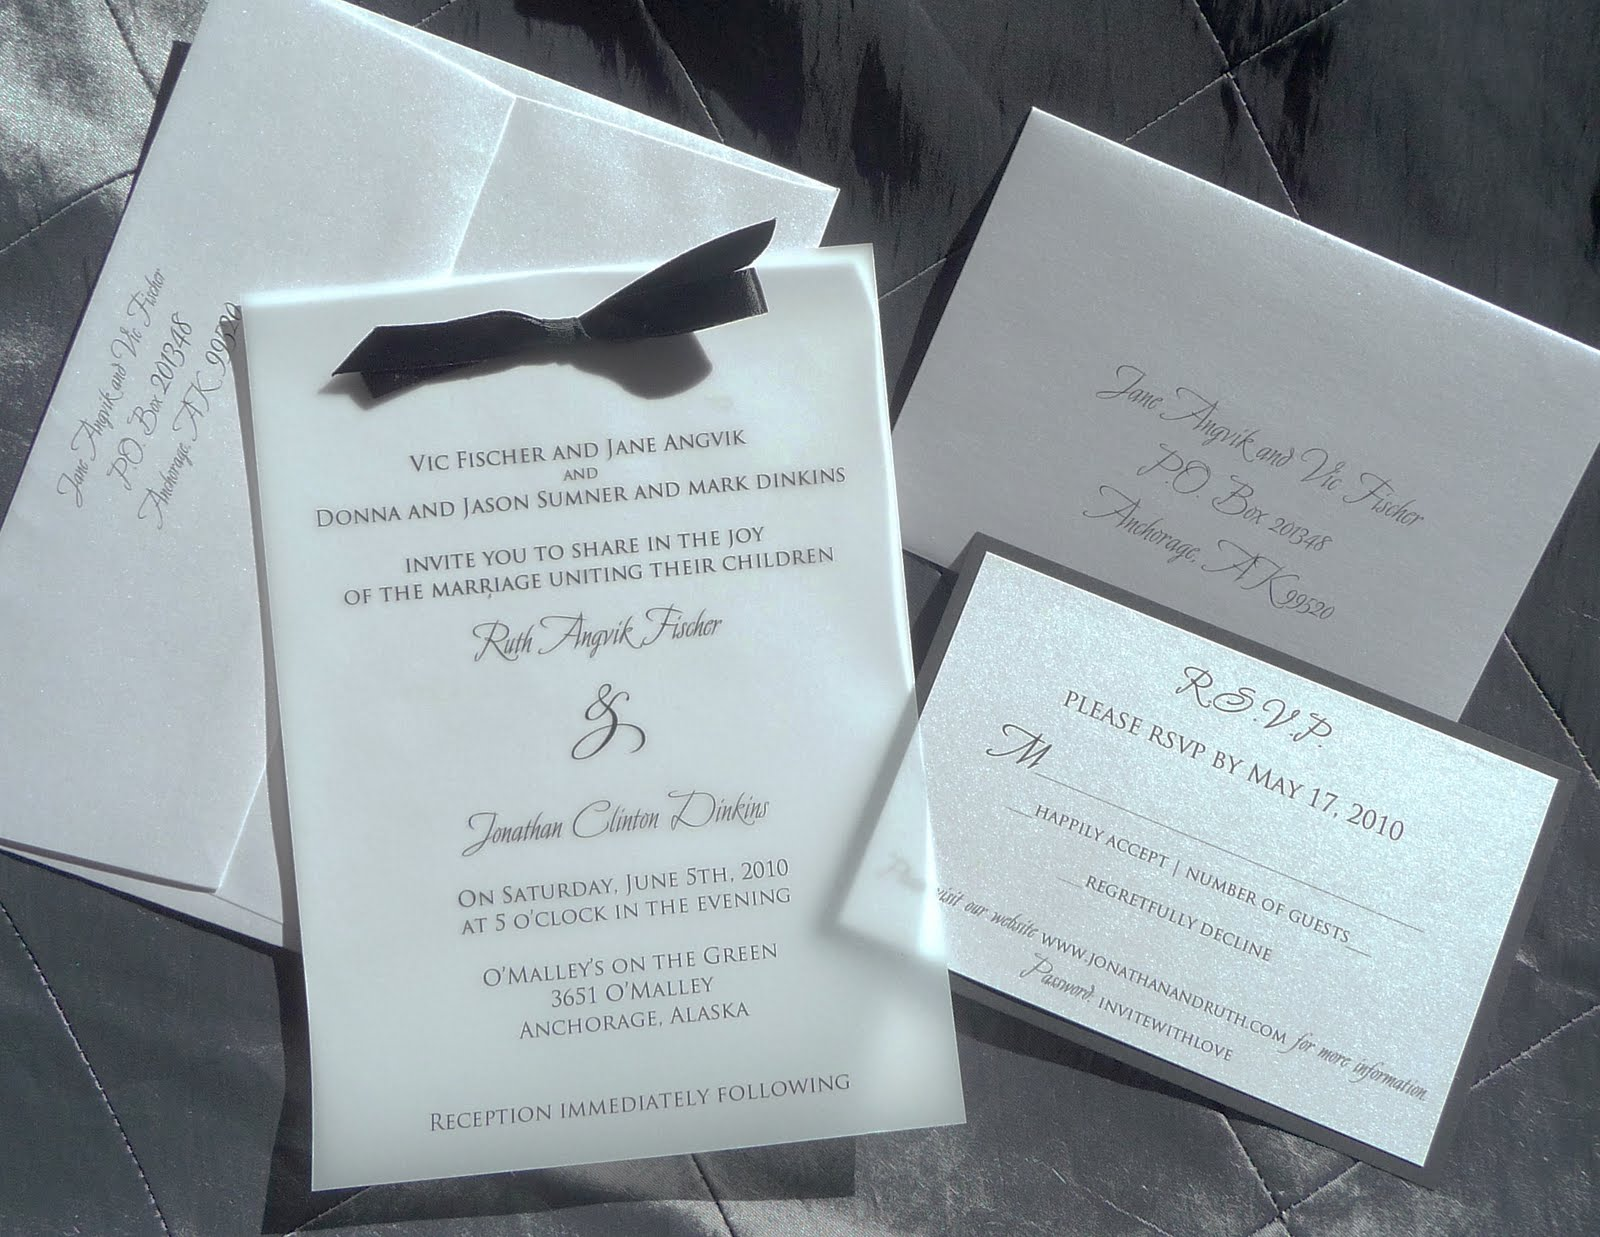 april+2010+054 karla delong weddings and events vellum invitations,Vellum Invitations